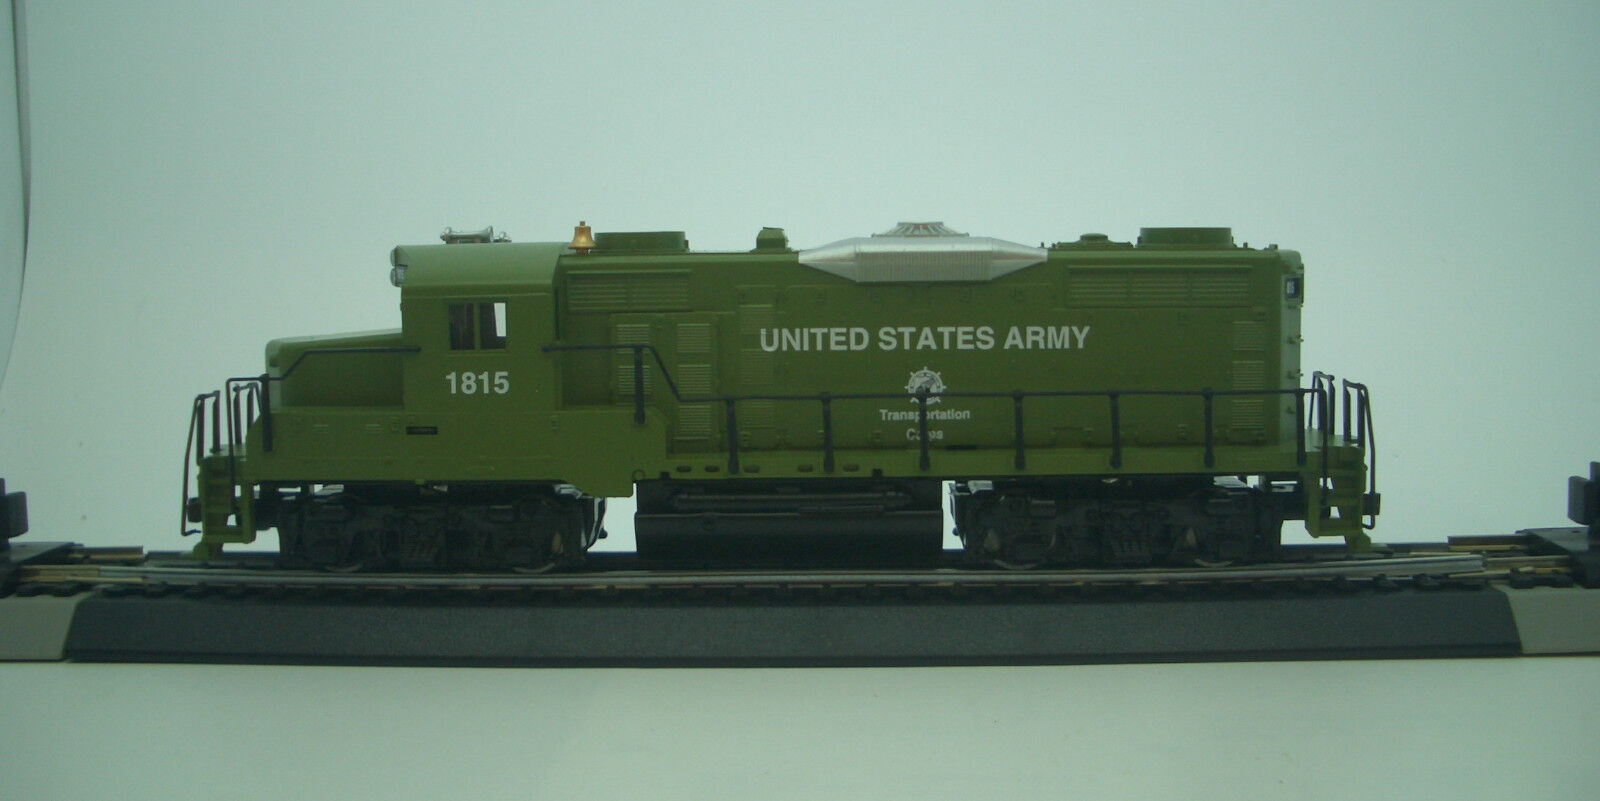 HO US ARMY EMD GP-20 LOCOMOTIVE DCC READY  414009 US ARMY LOCOMOTIVE